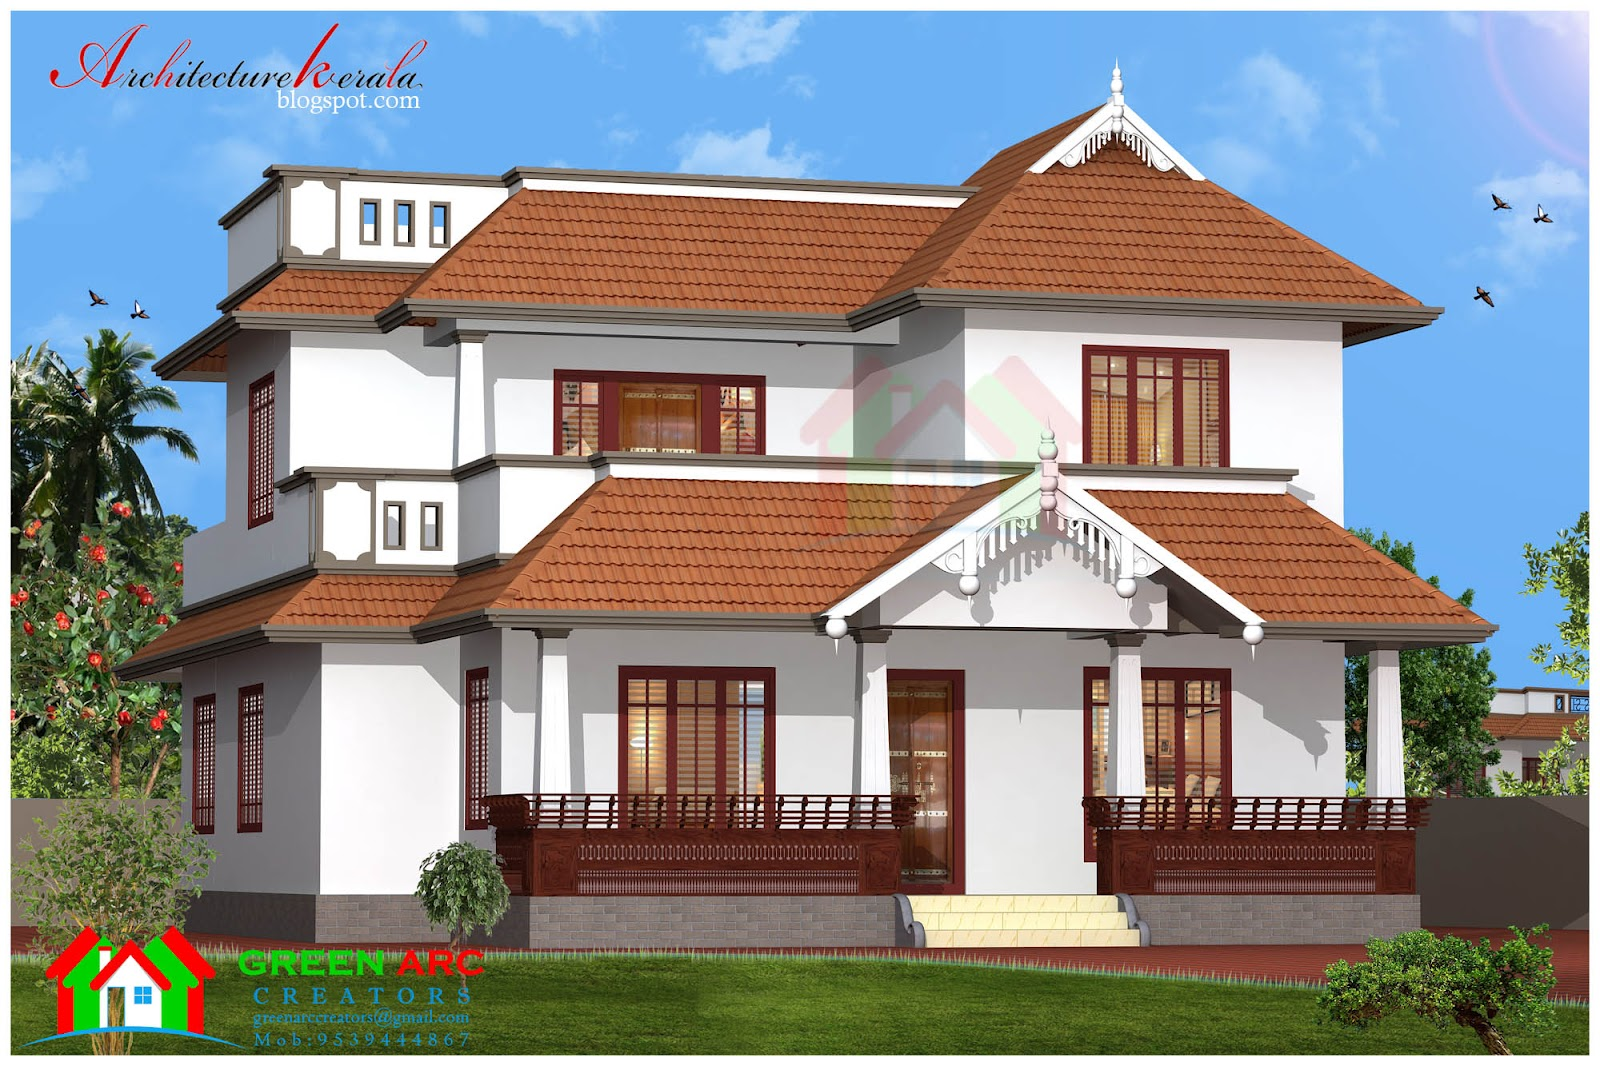 Traditional Home Designs Architecture Kerala Traditional Style Kerala House Plan